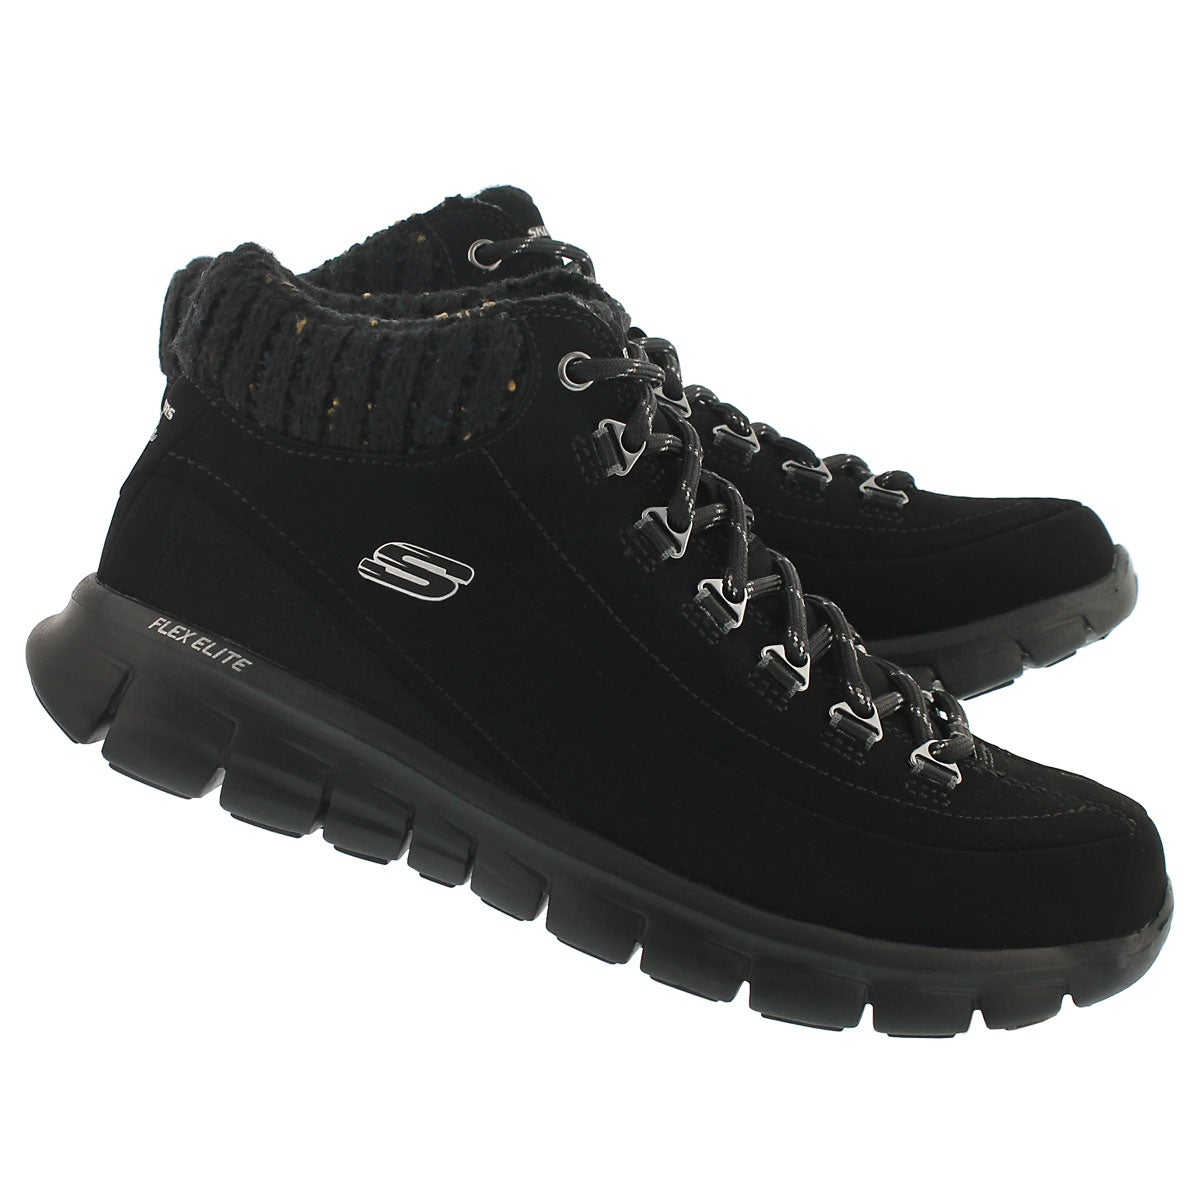 Lds Winter Nights black lace up sneaker